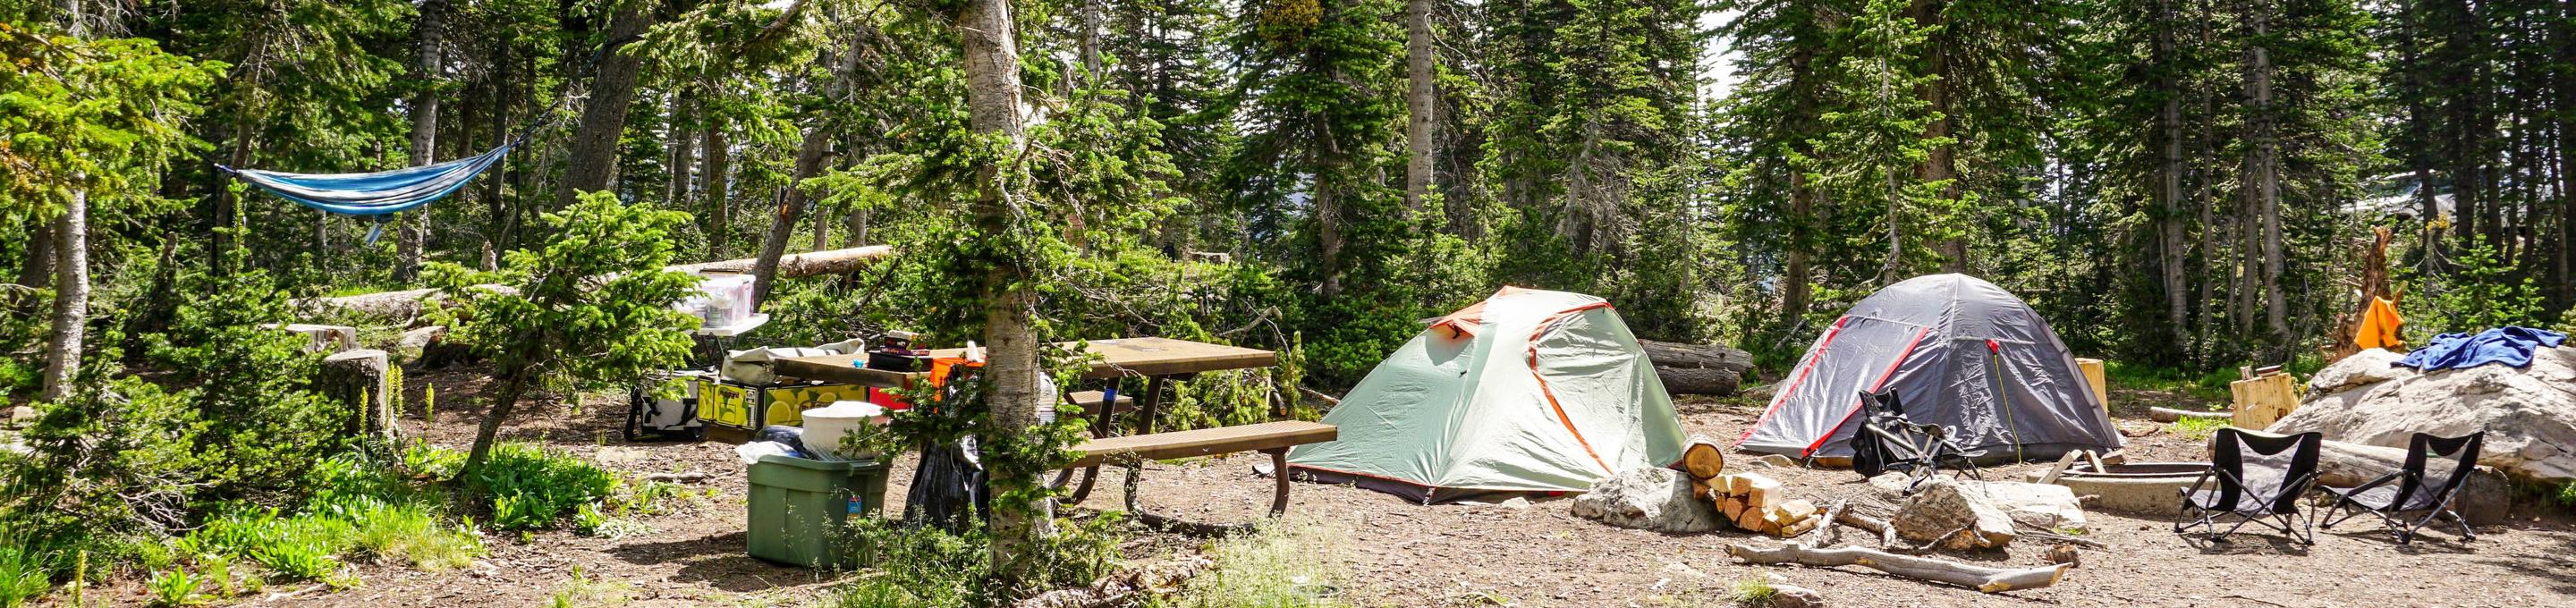 Moosehorn Campground - 028